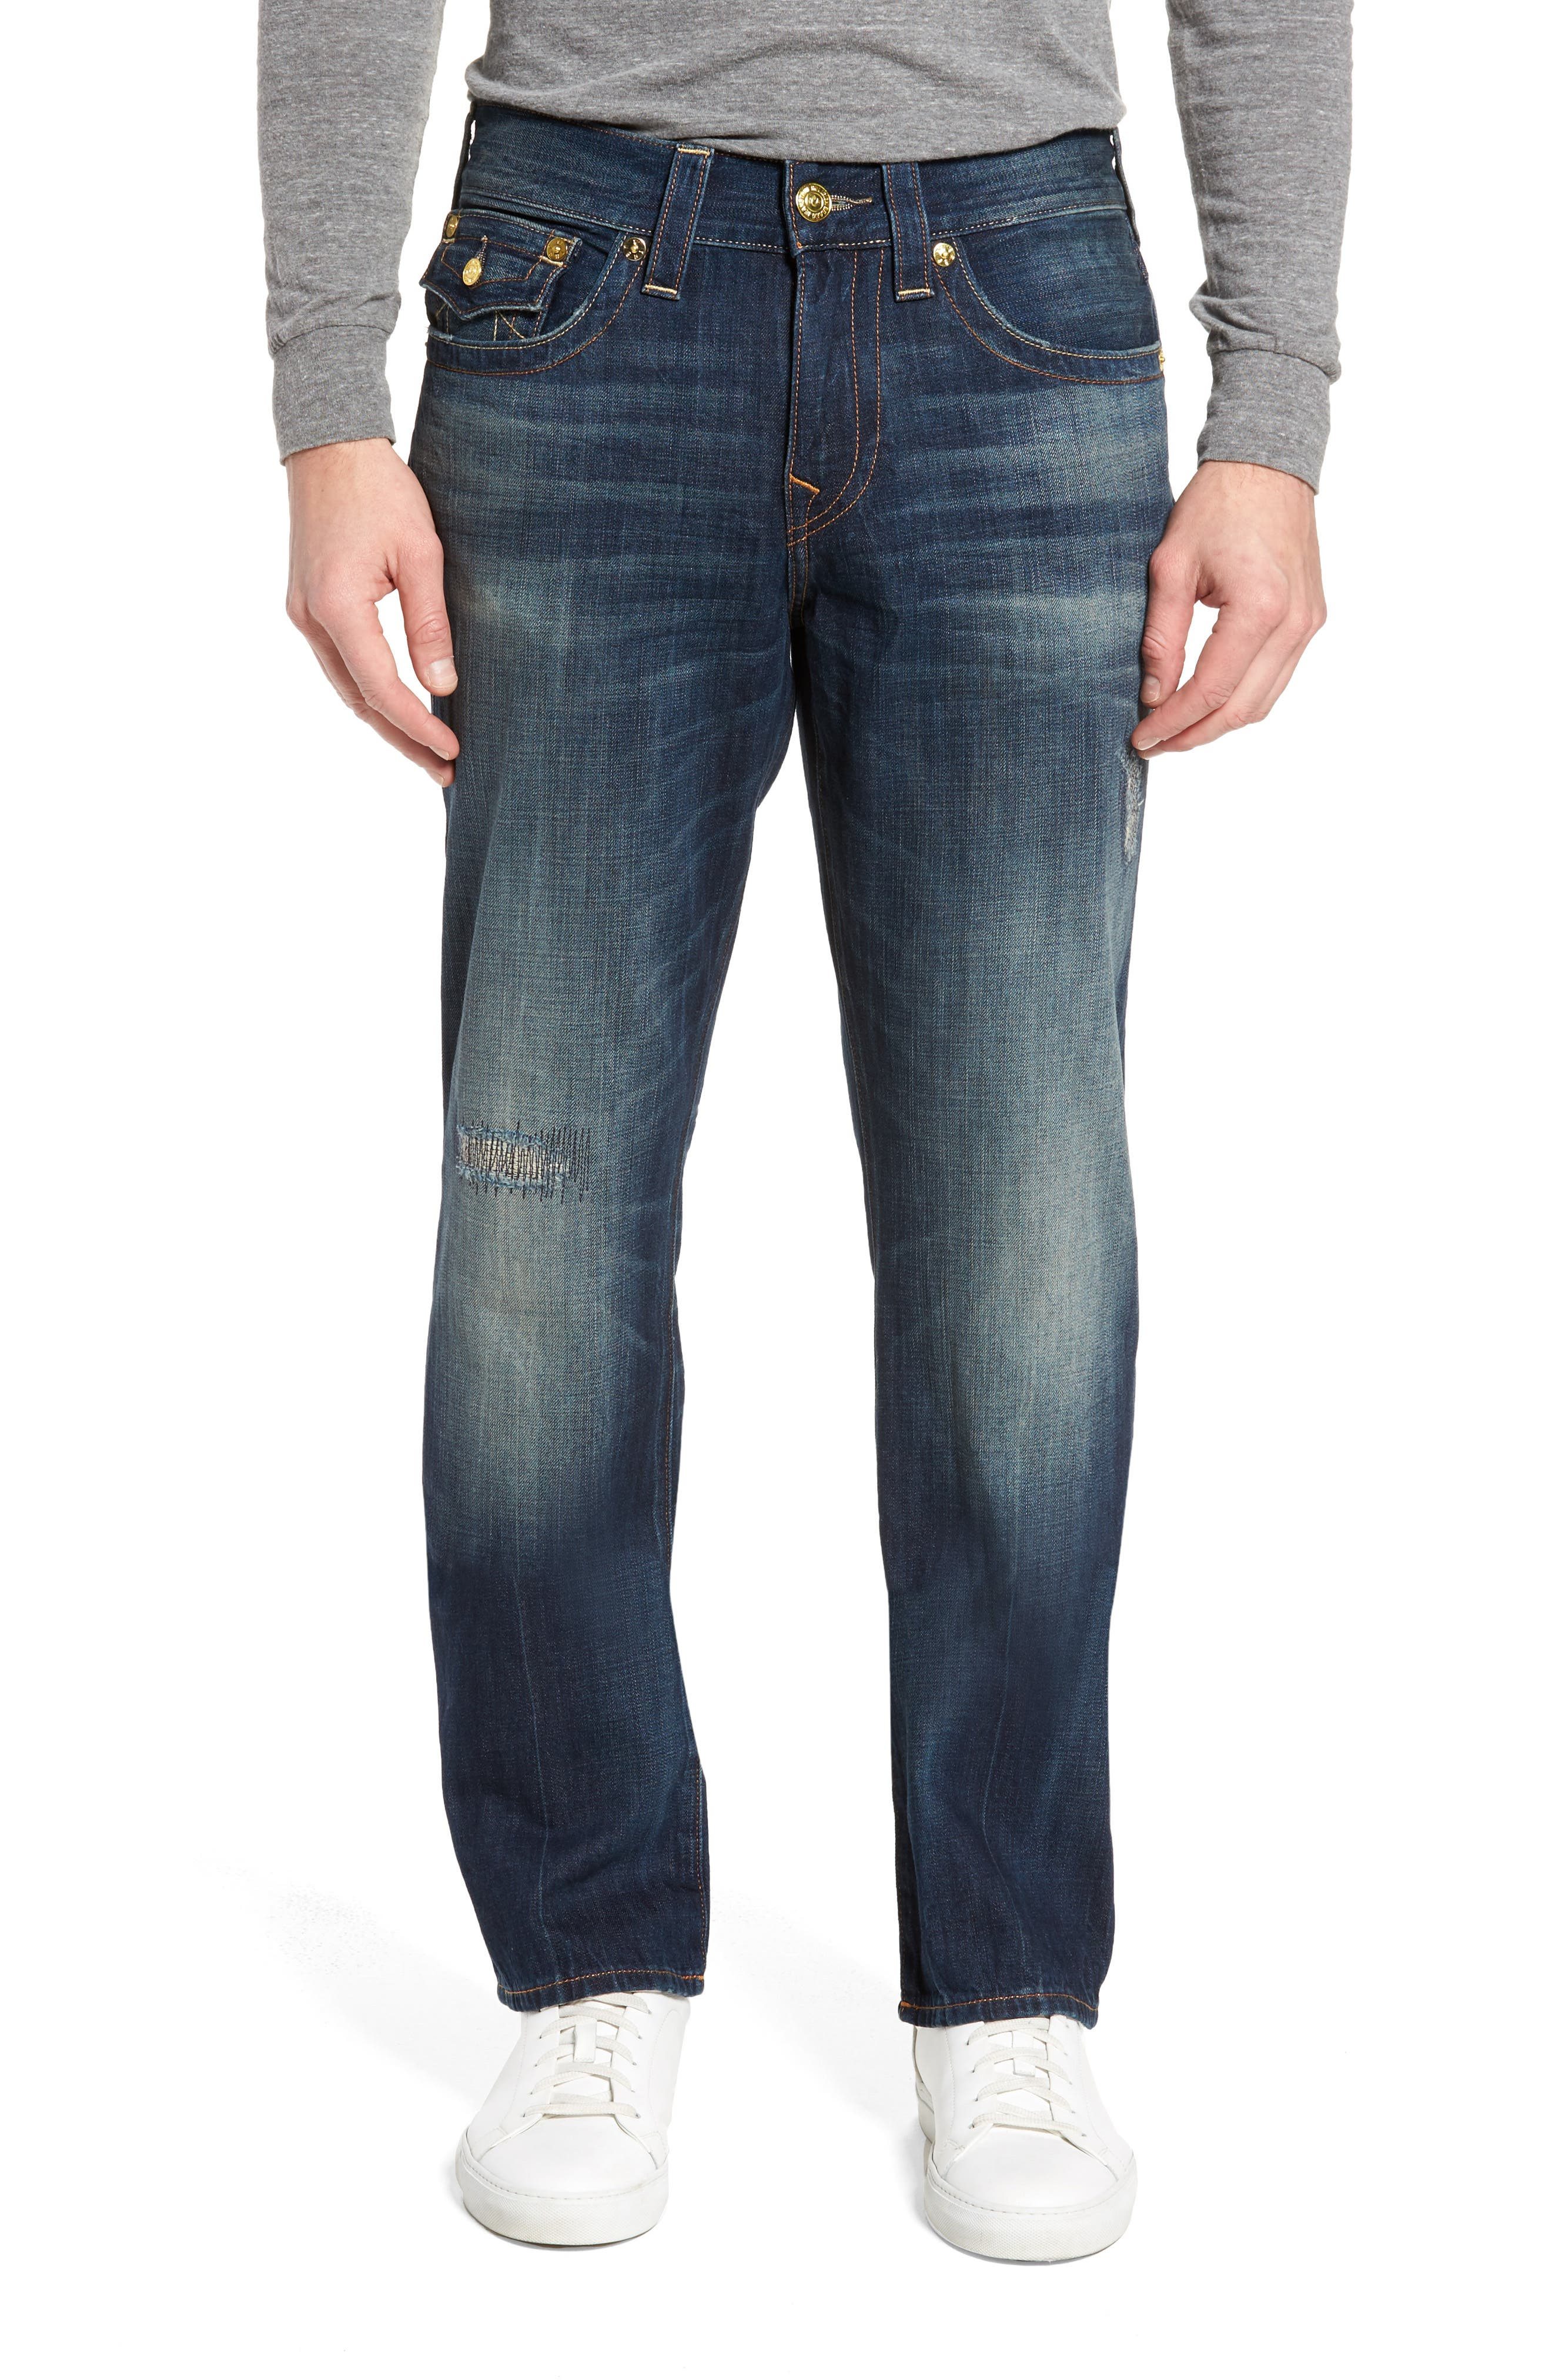 Alternate Image 1 Selected - True Religion Brand Jeans Geno Straight Leg Jeans (Mended Center Stage)